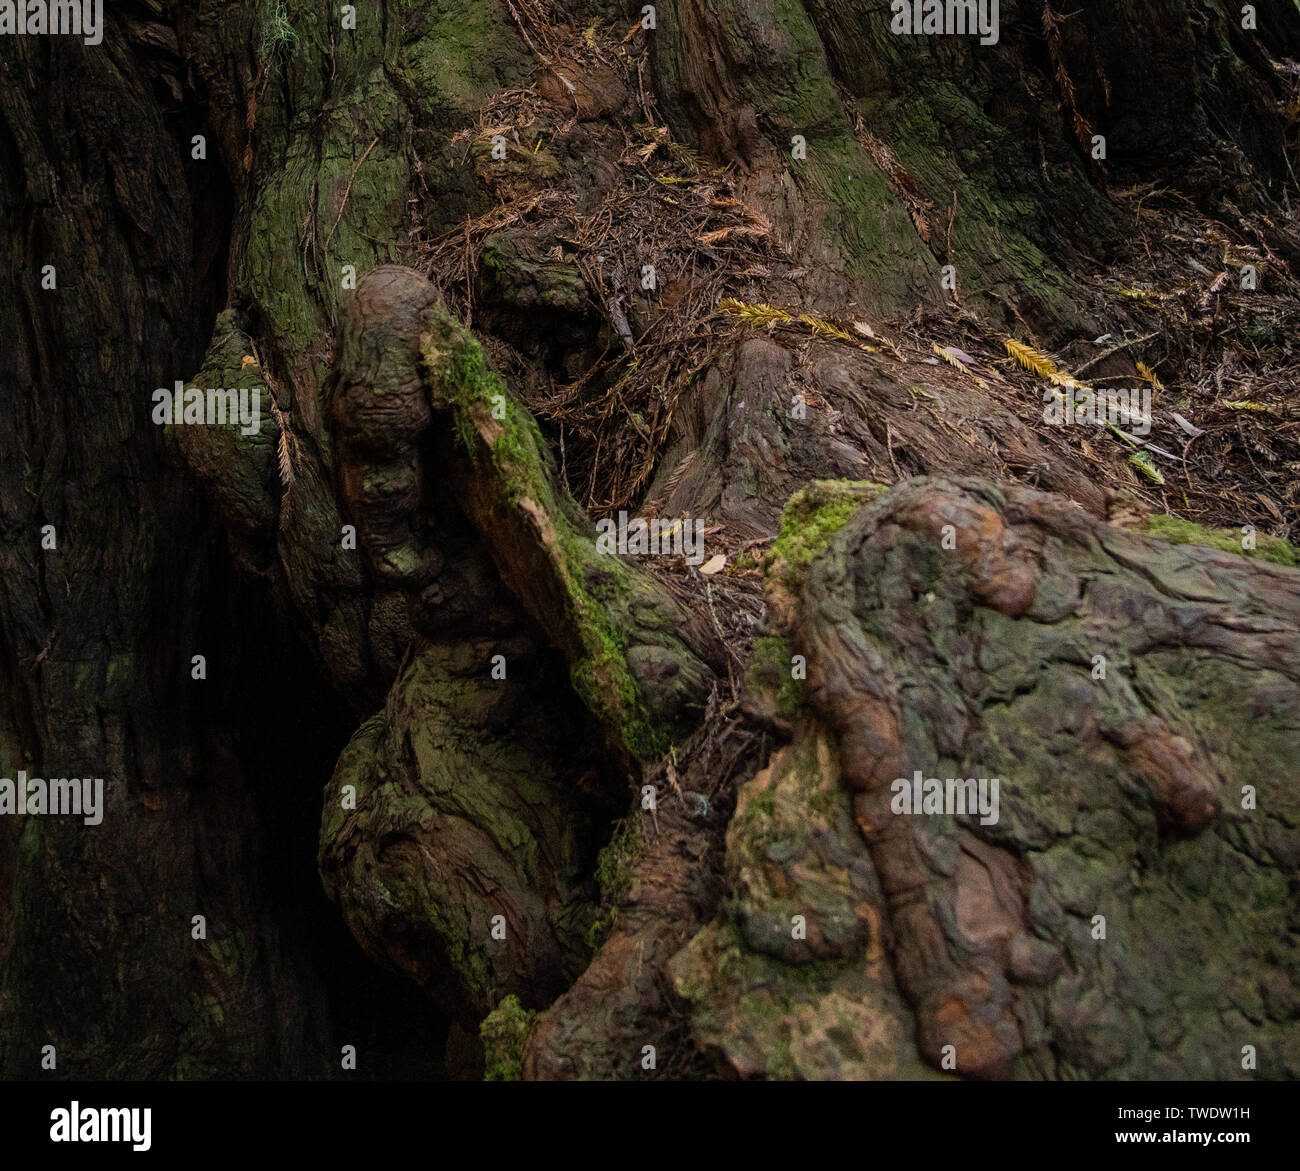 Detailed shot of redwood tree knots on the roots. in Muir Woods National Park. - Stock Image